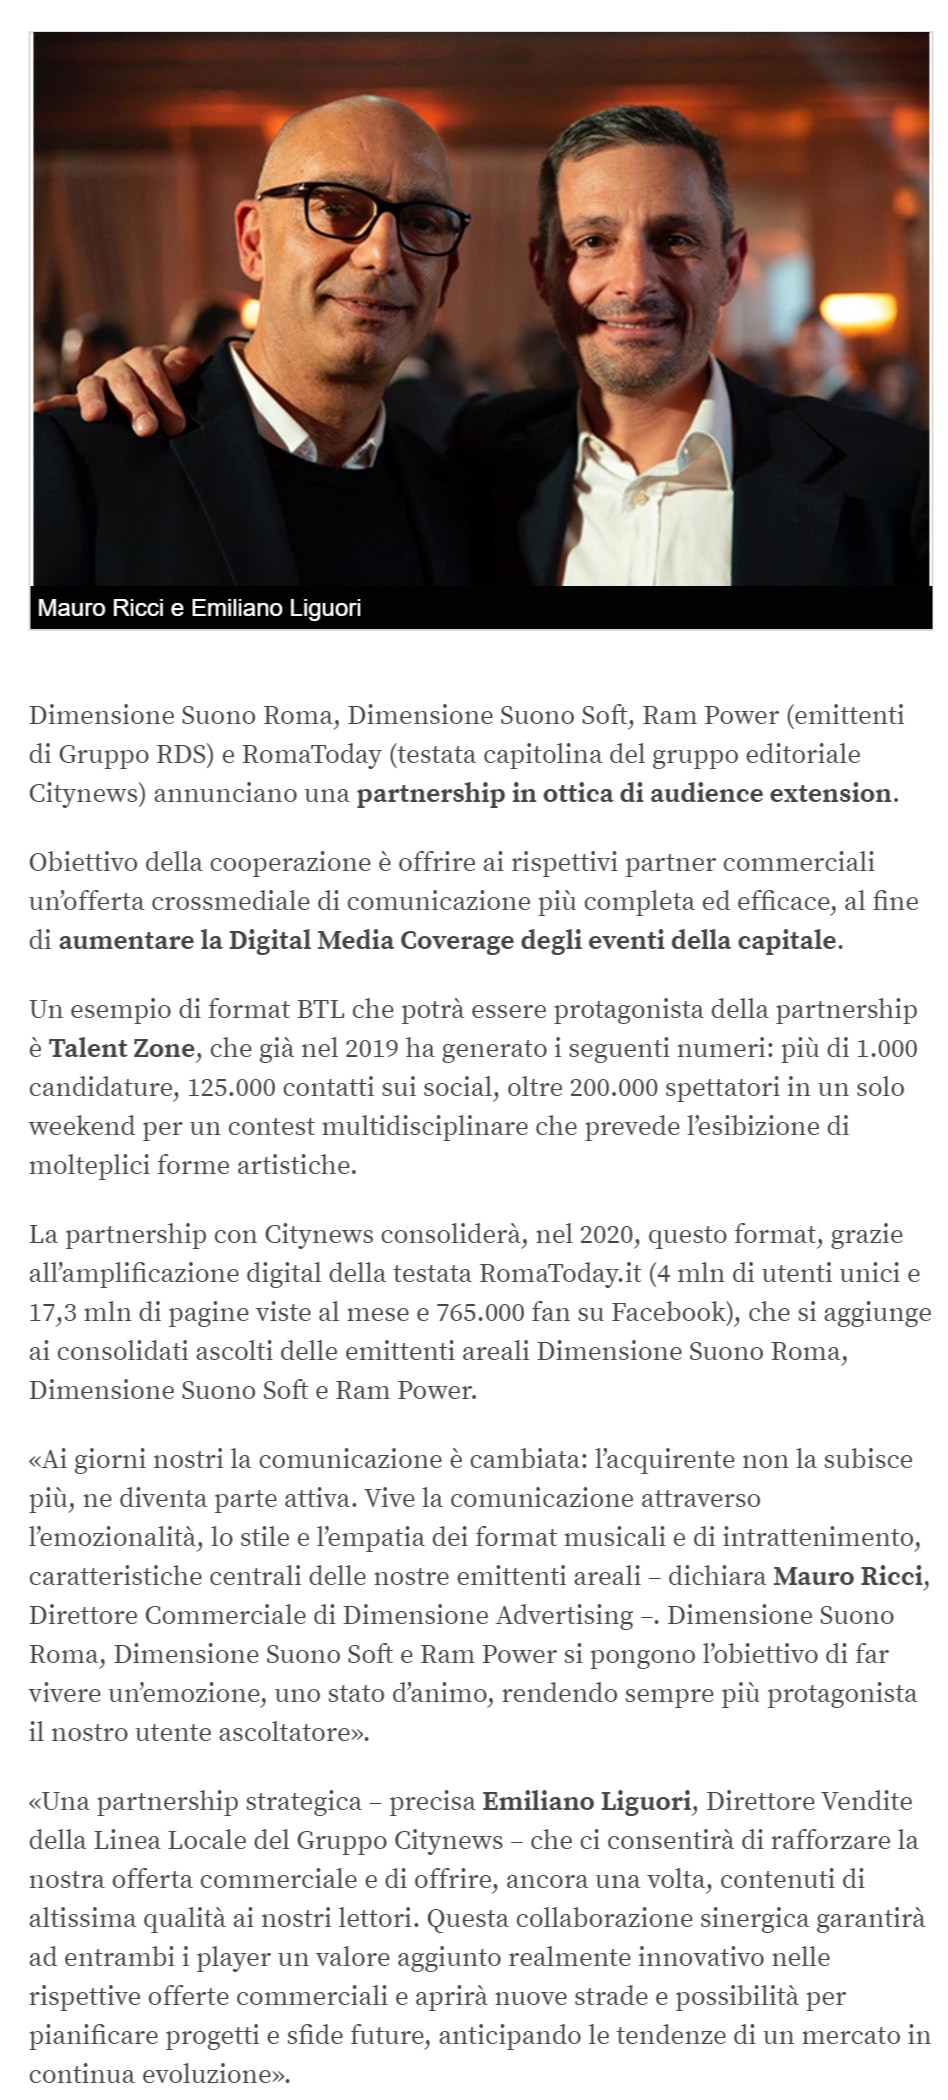 Dimensione Advertising e Gruppo Citynews, accordo di audience extension a Roma - Engage.it, 24 febbraio 2020-2